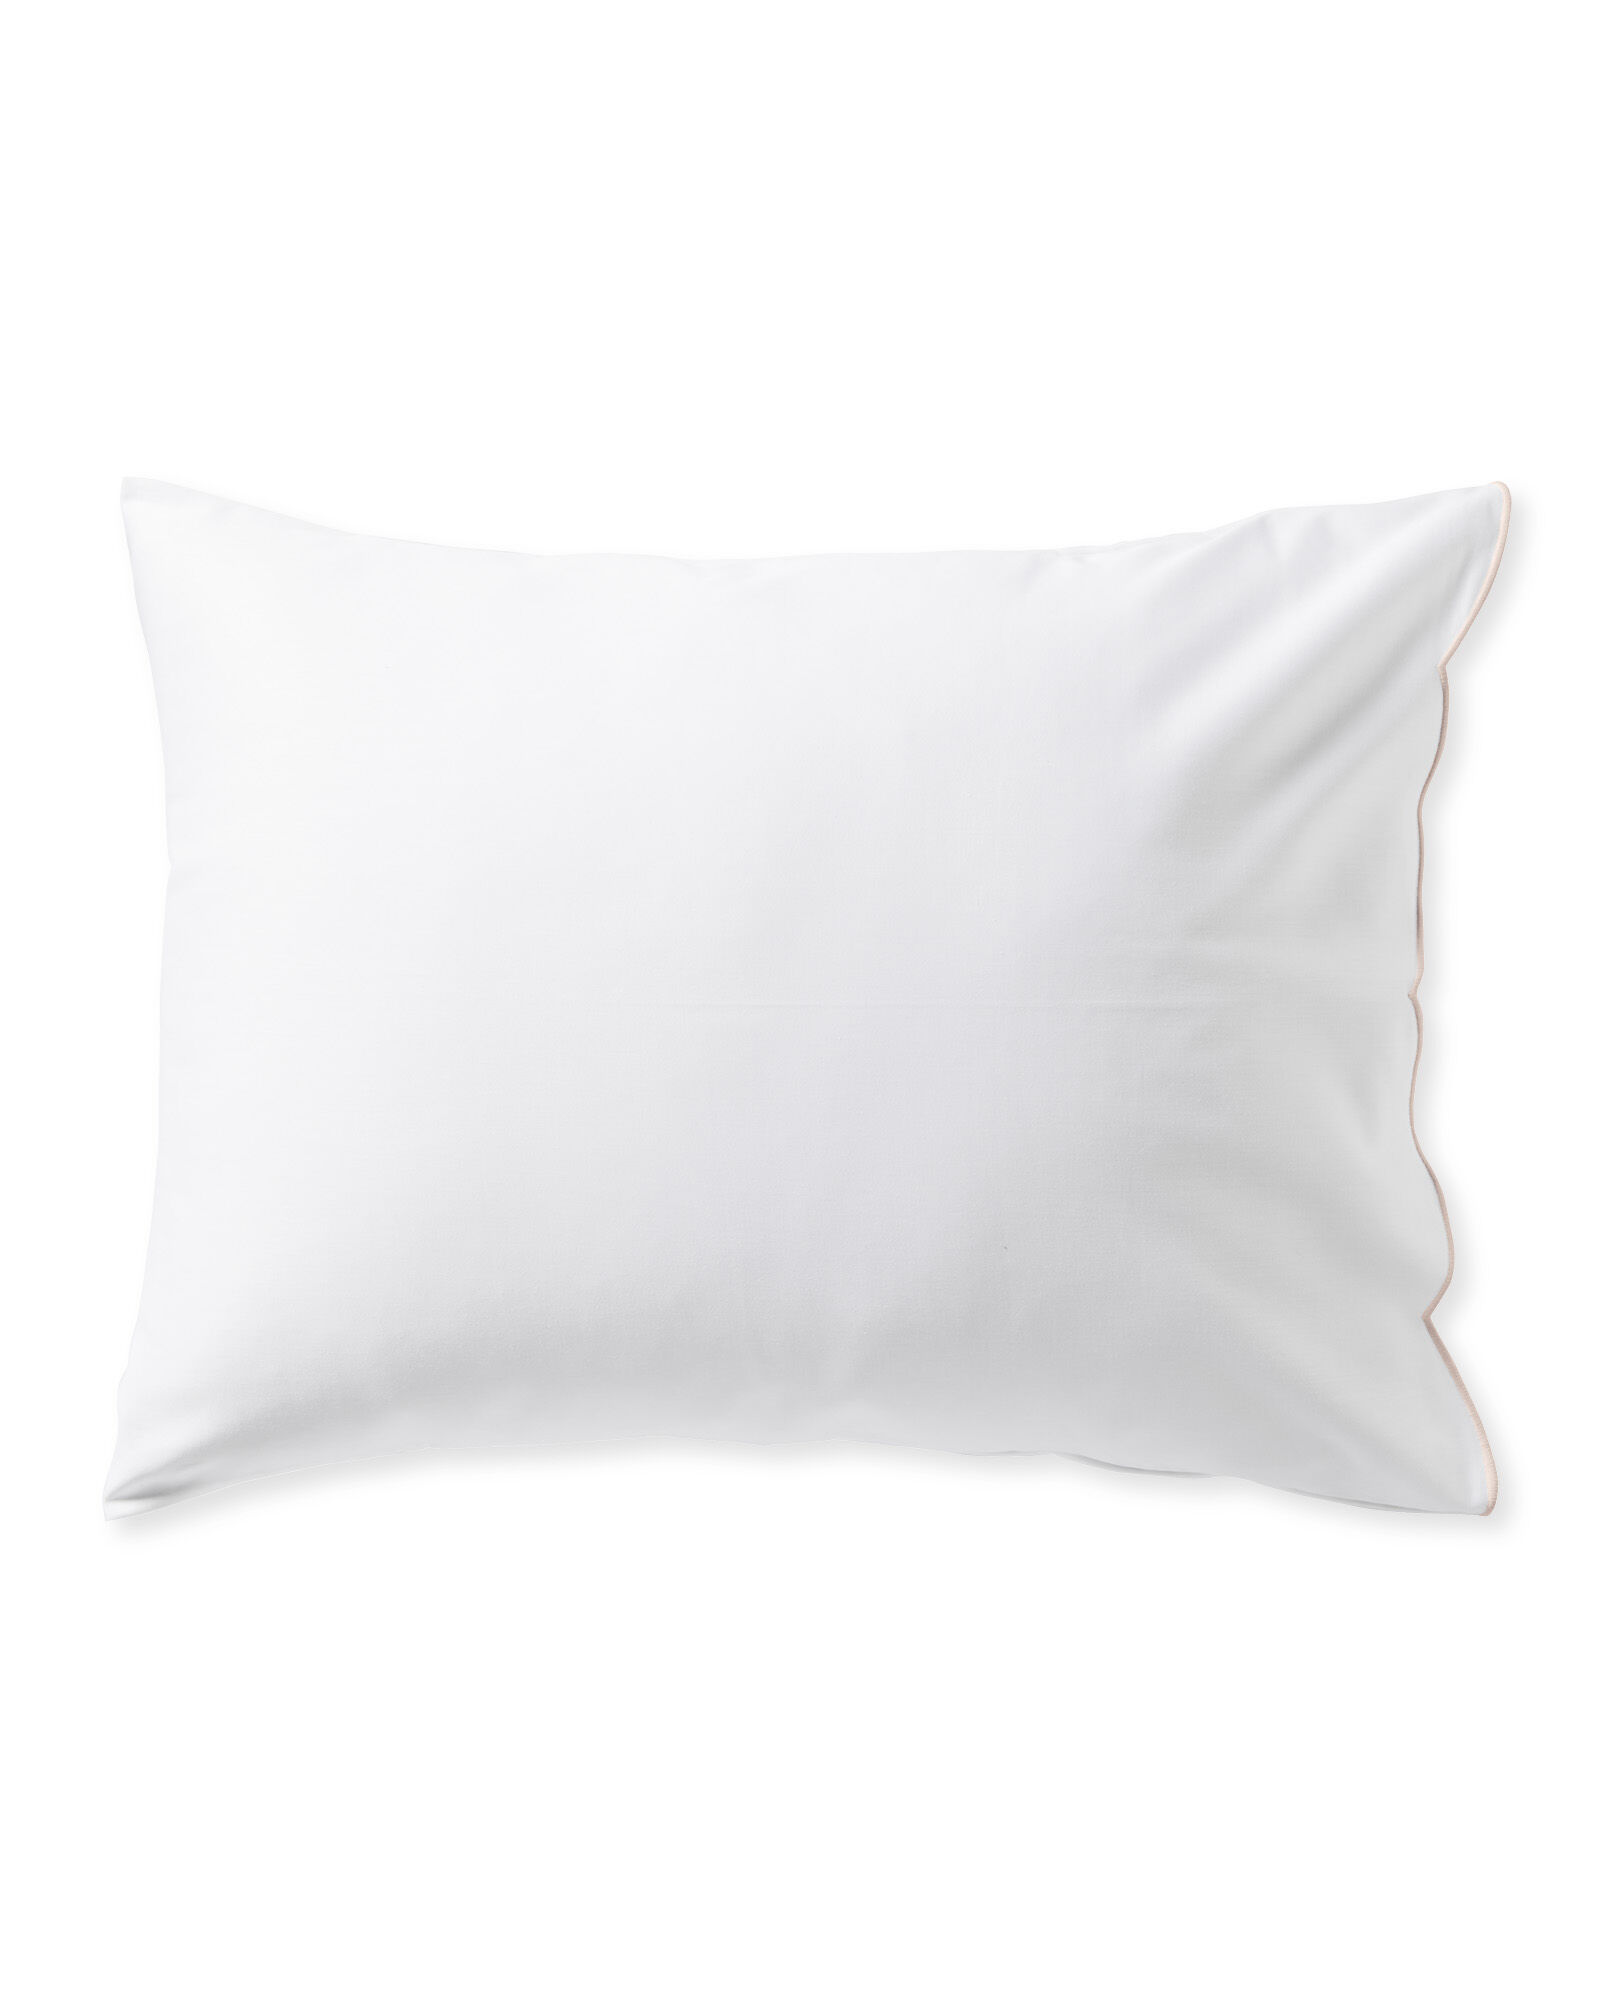 Scallop Pillowcases (Set of 2), Pink Sand